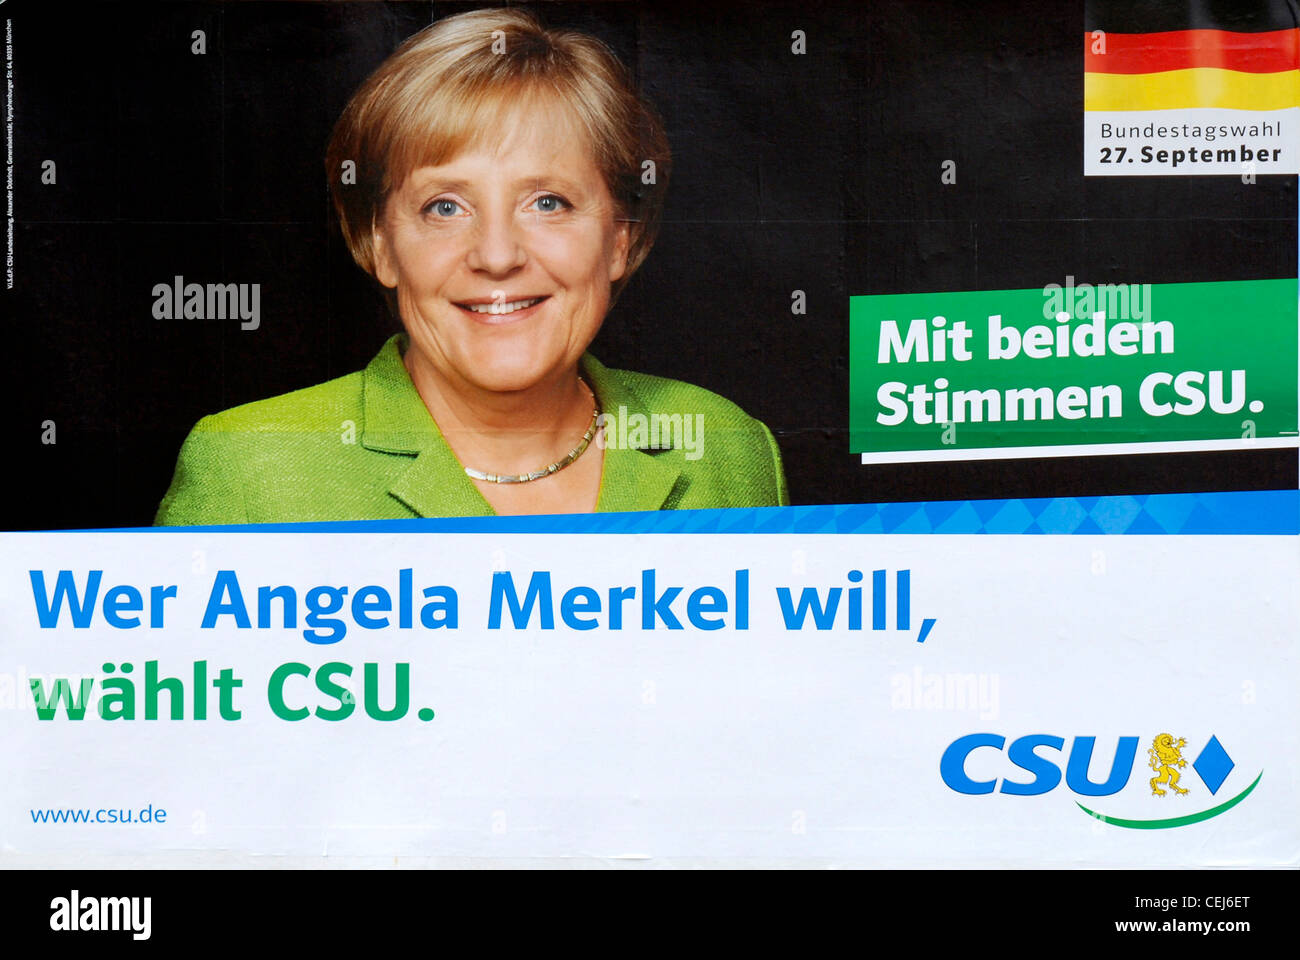 Election poster of the Bavarian party CSU for Angela Merkel to the Bundestag elections of 2009. - Stock Image